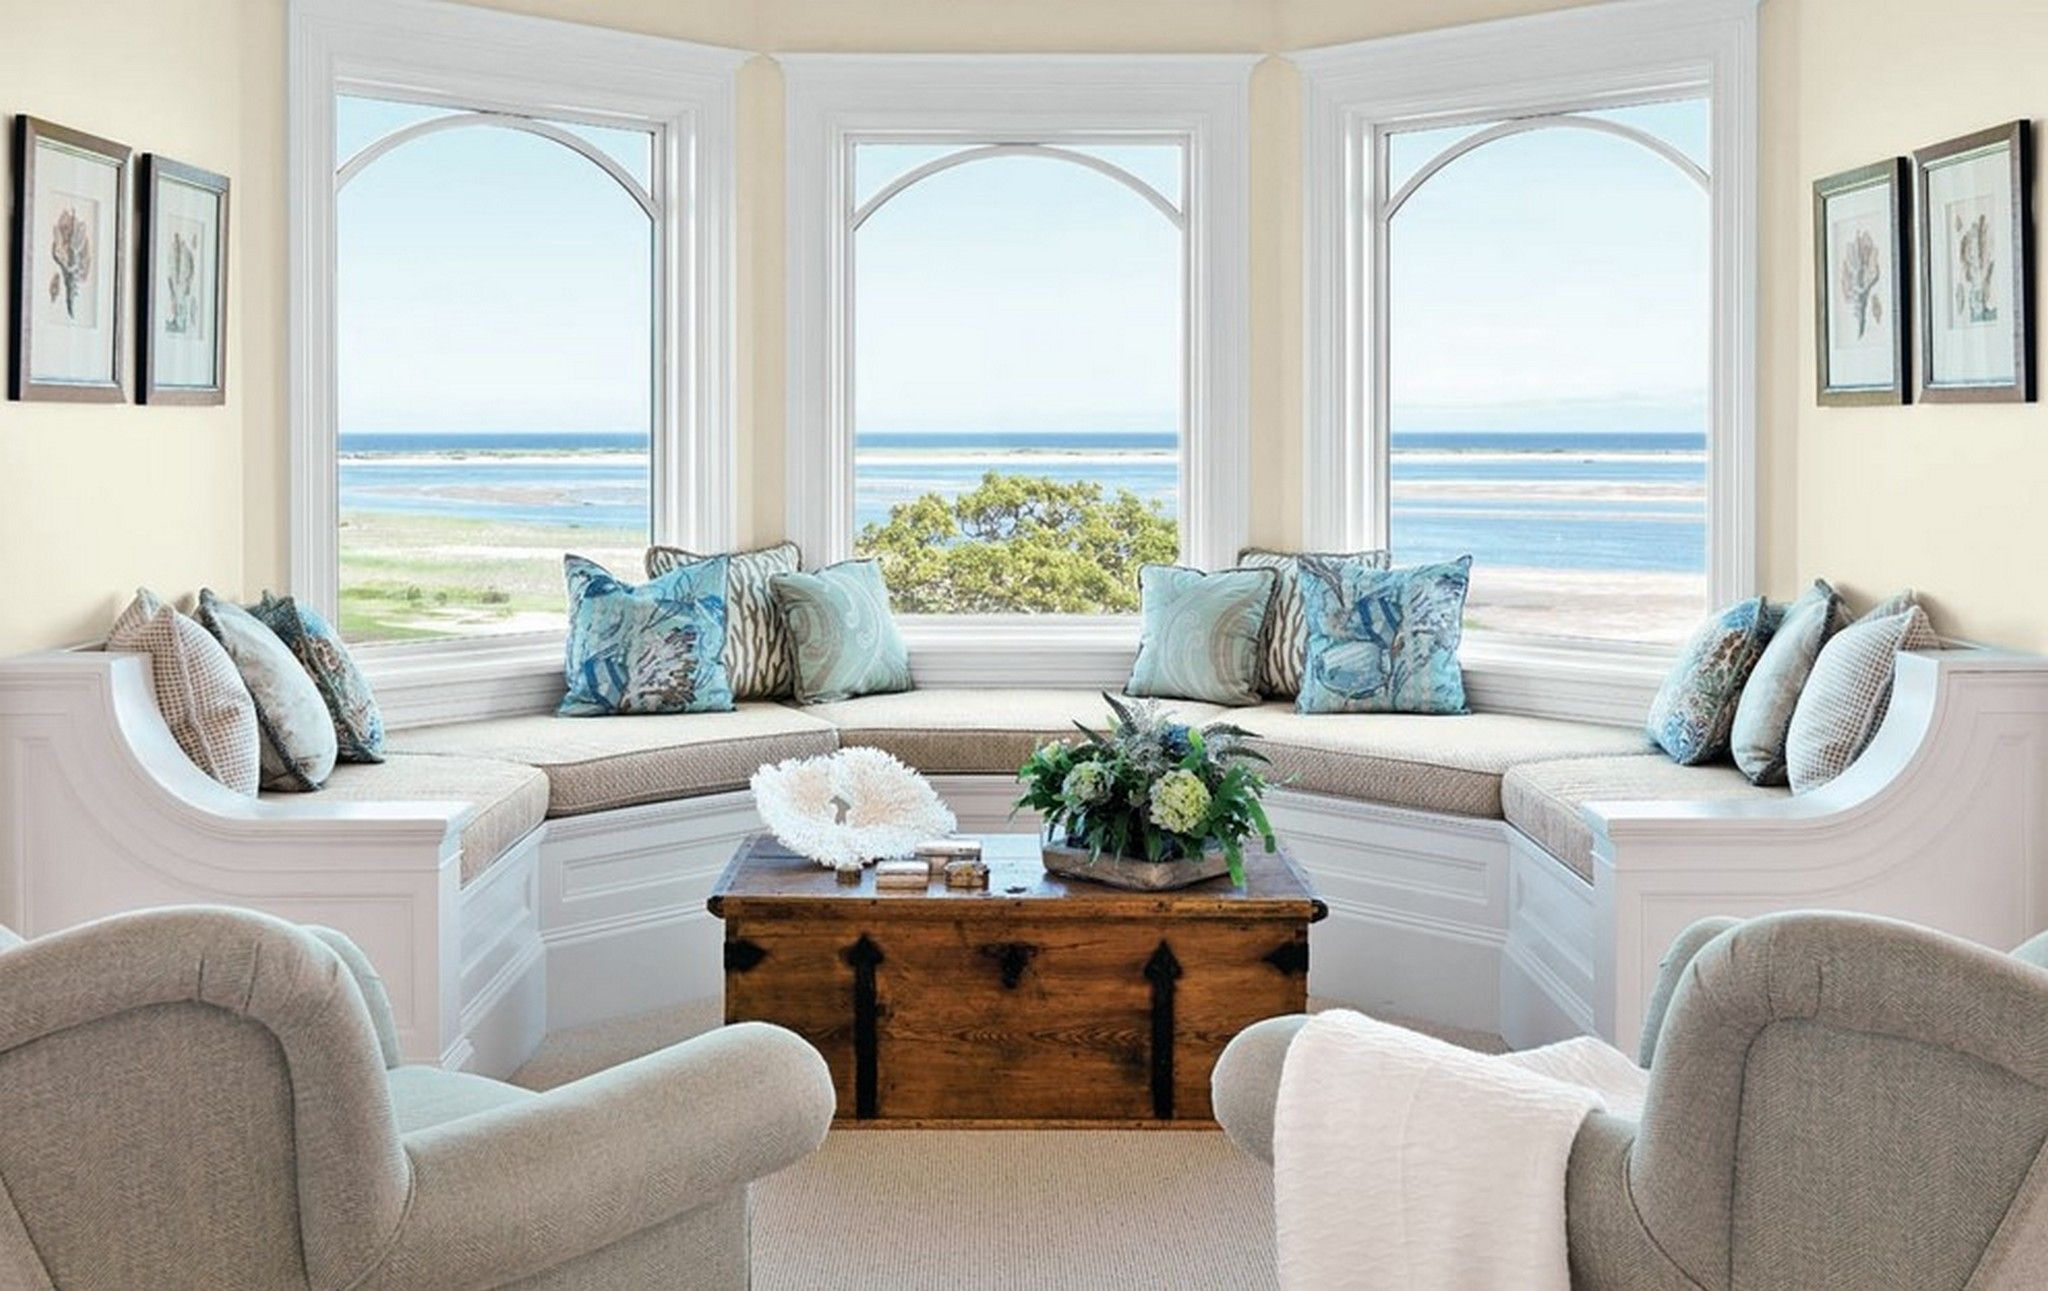 beach themed living room decorating living rooms and bay window designs on pinterest - Bay Window Design Ideas